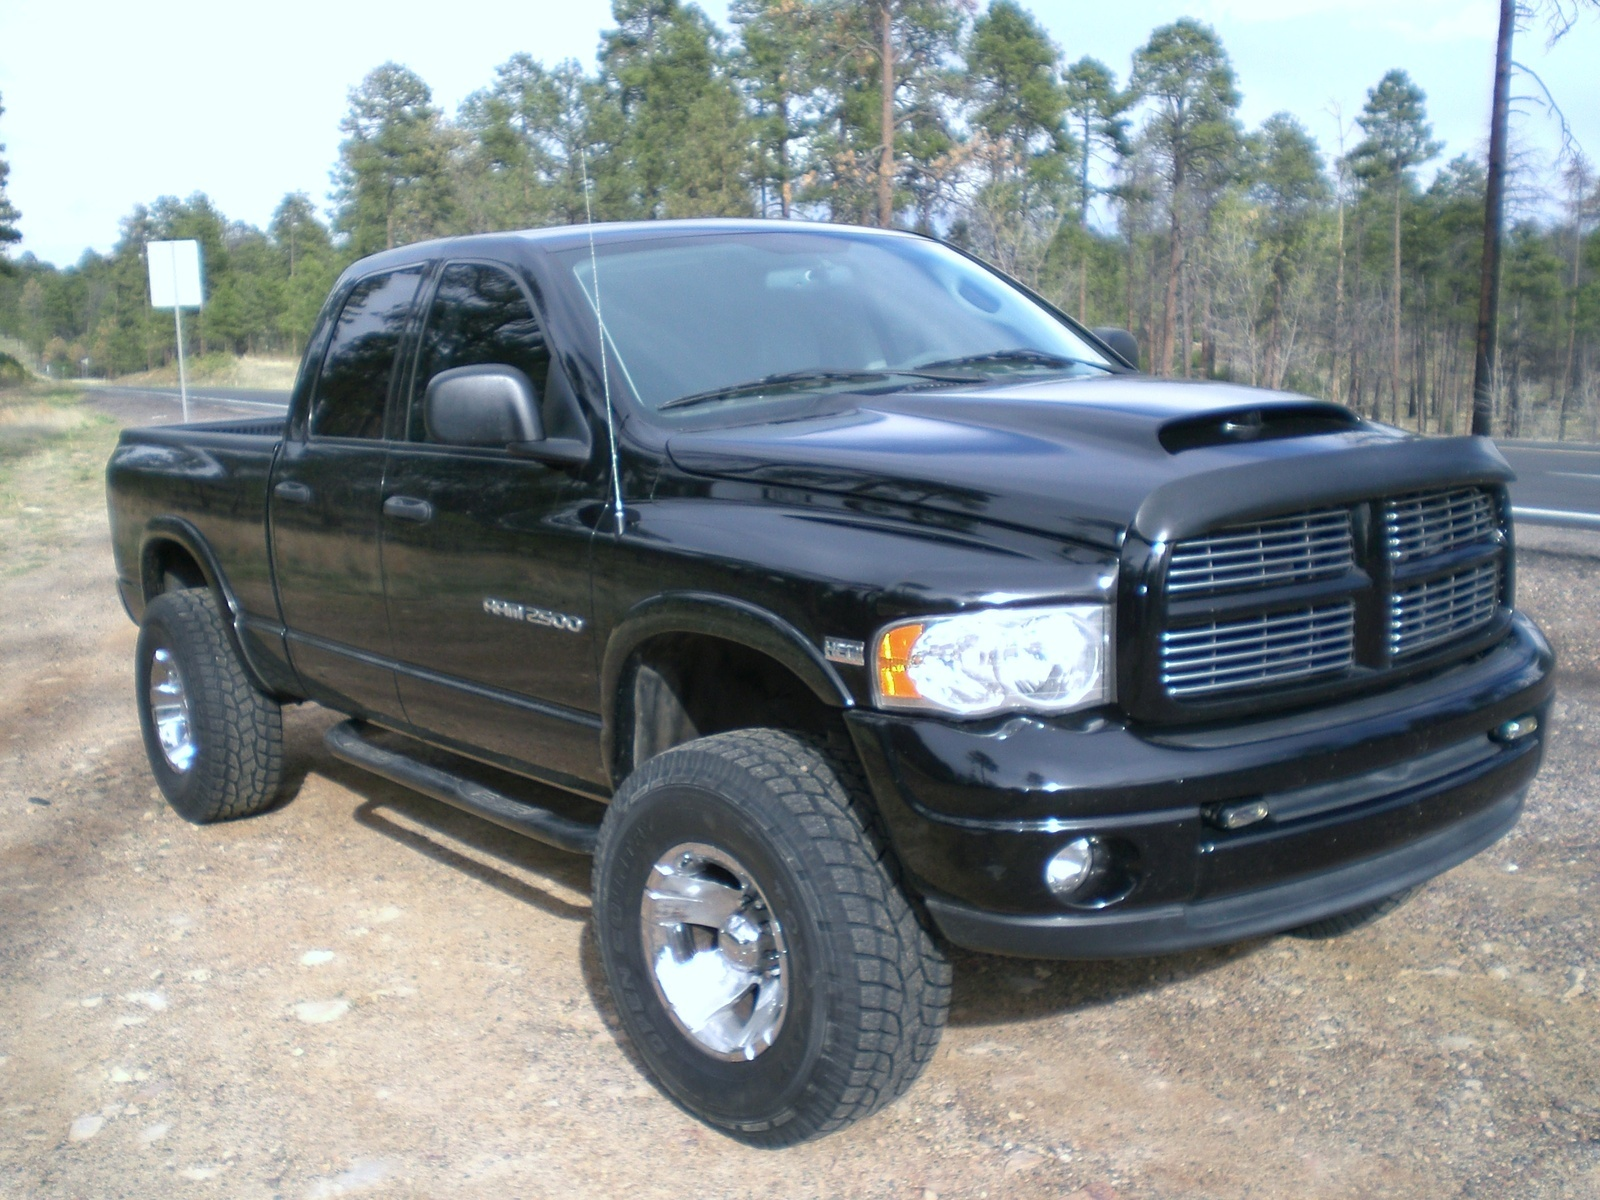 2003 dodge ram 2500 overview cargurus. Black Bedroom Furniture Sets. Home Design Ideas